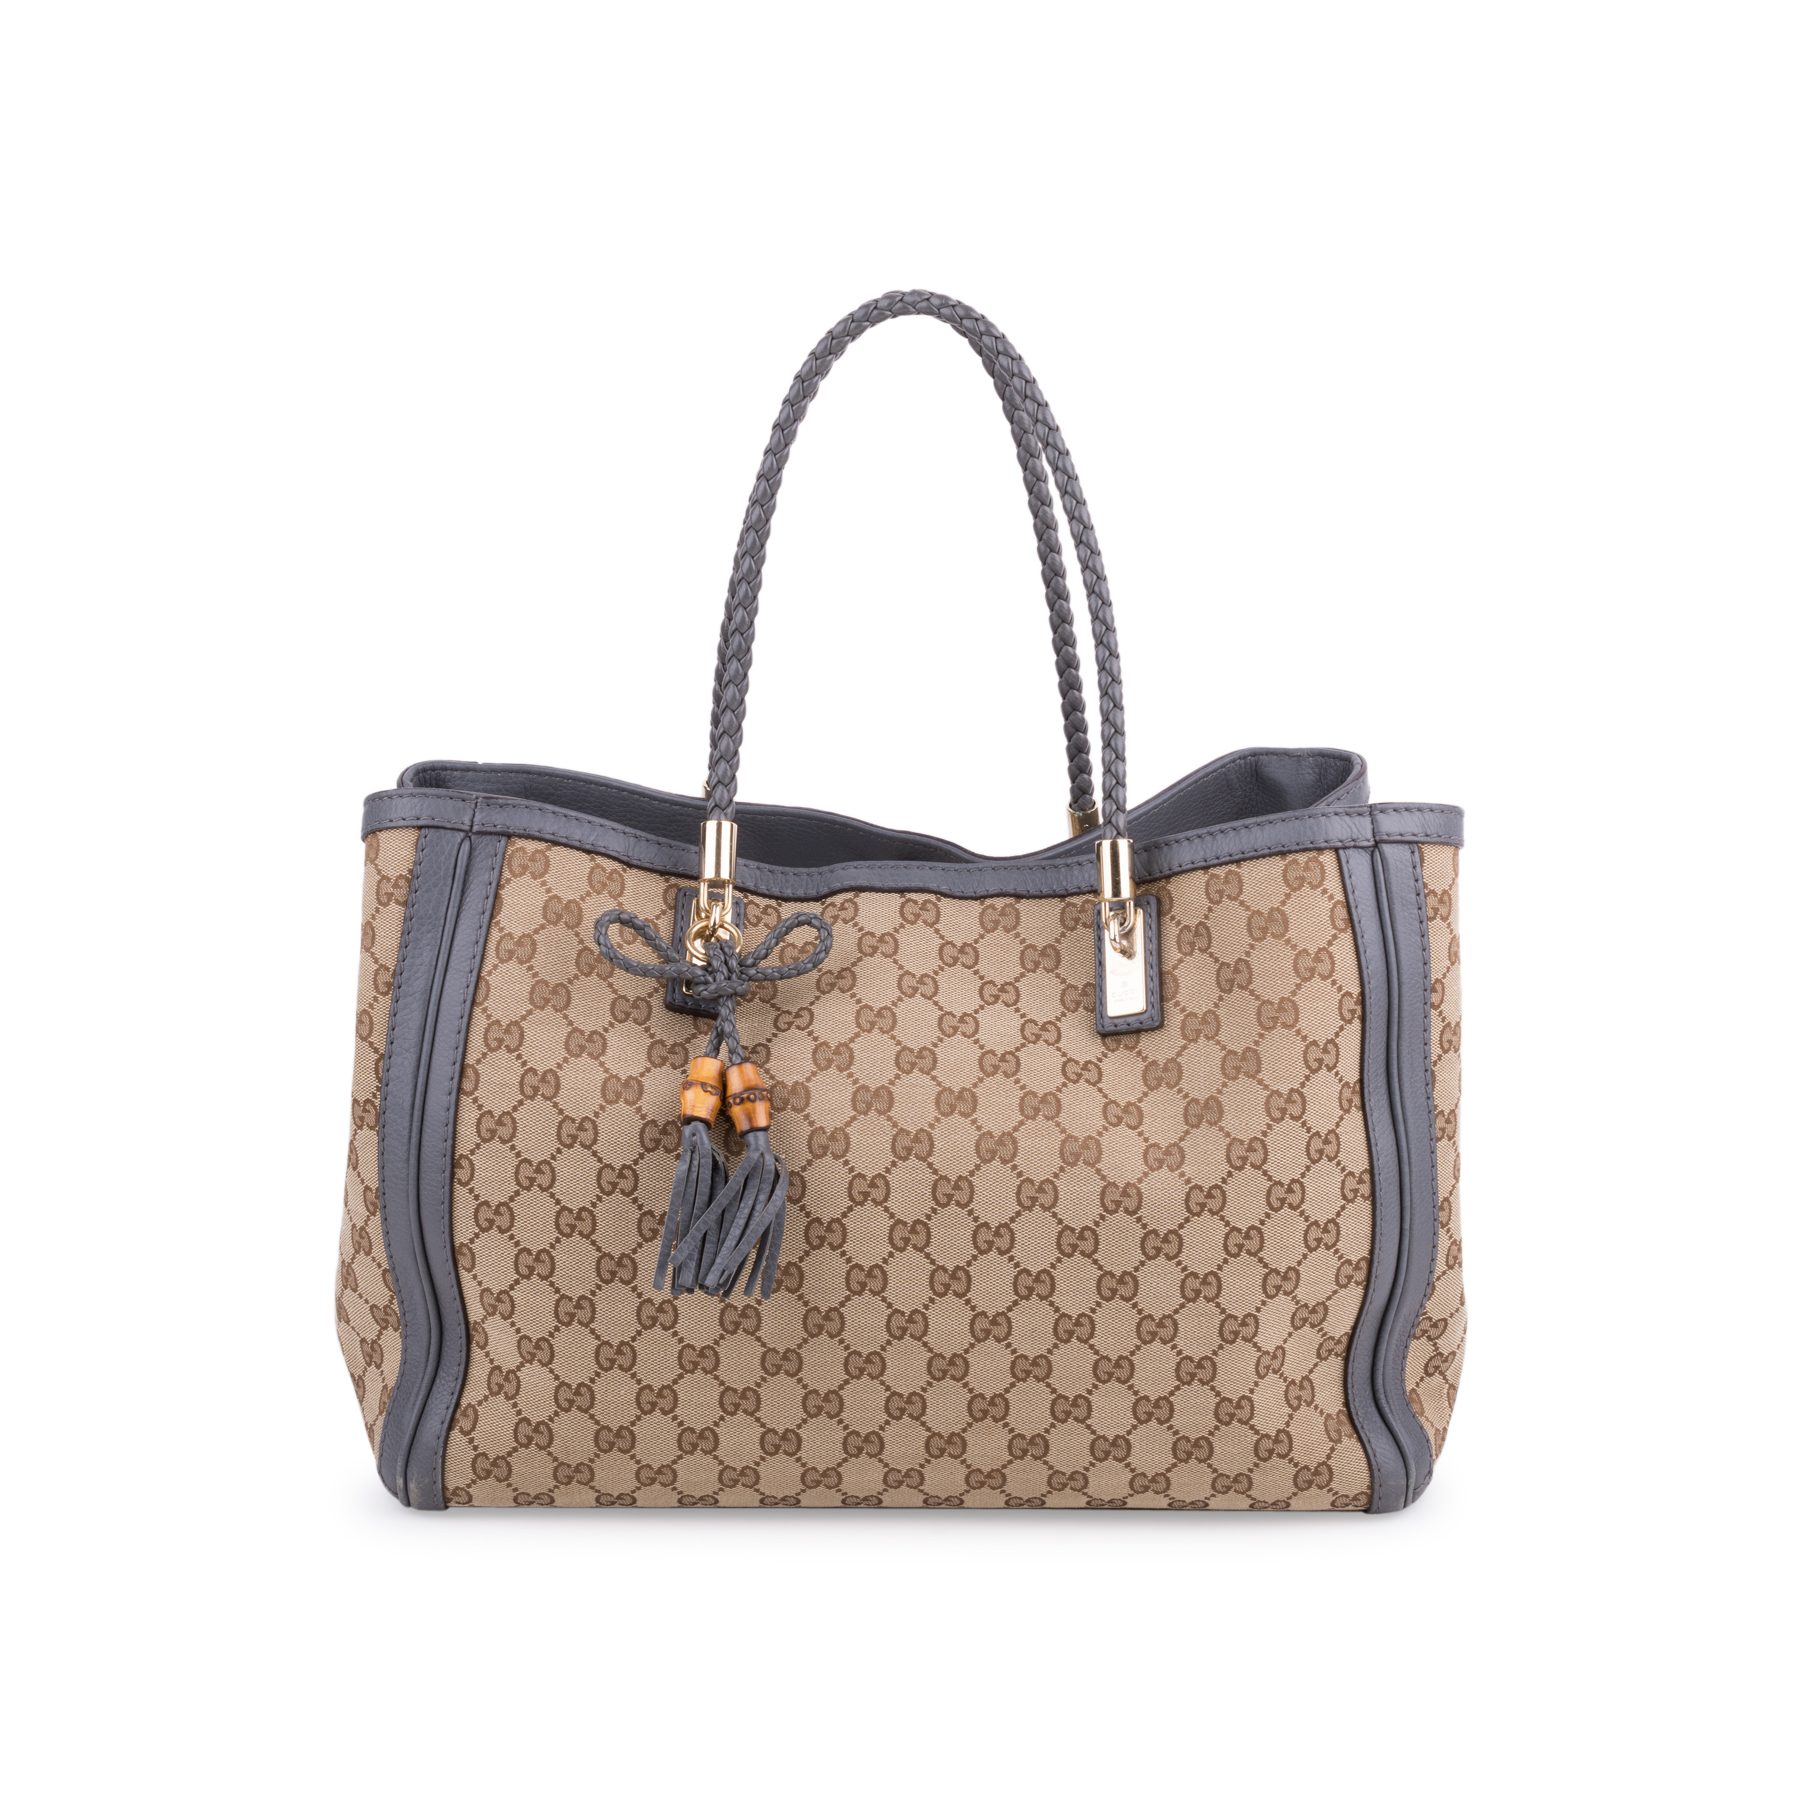 5c07cd4da Authentic Second Hand Gucci Bella Canvas Tote (PSS-639-00002) - THE FIFTH  COLLECTION